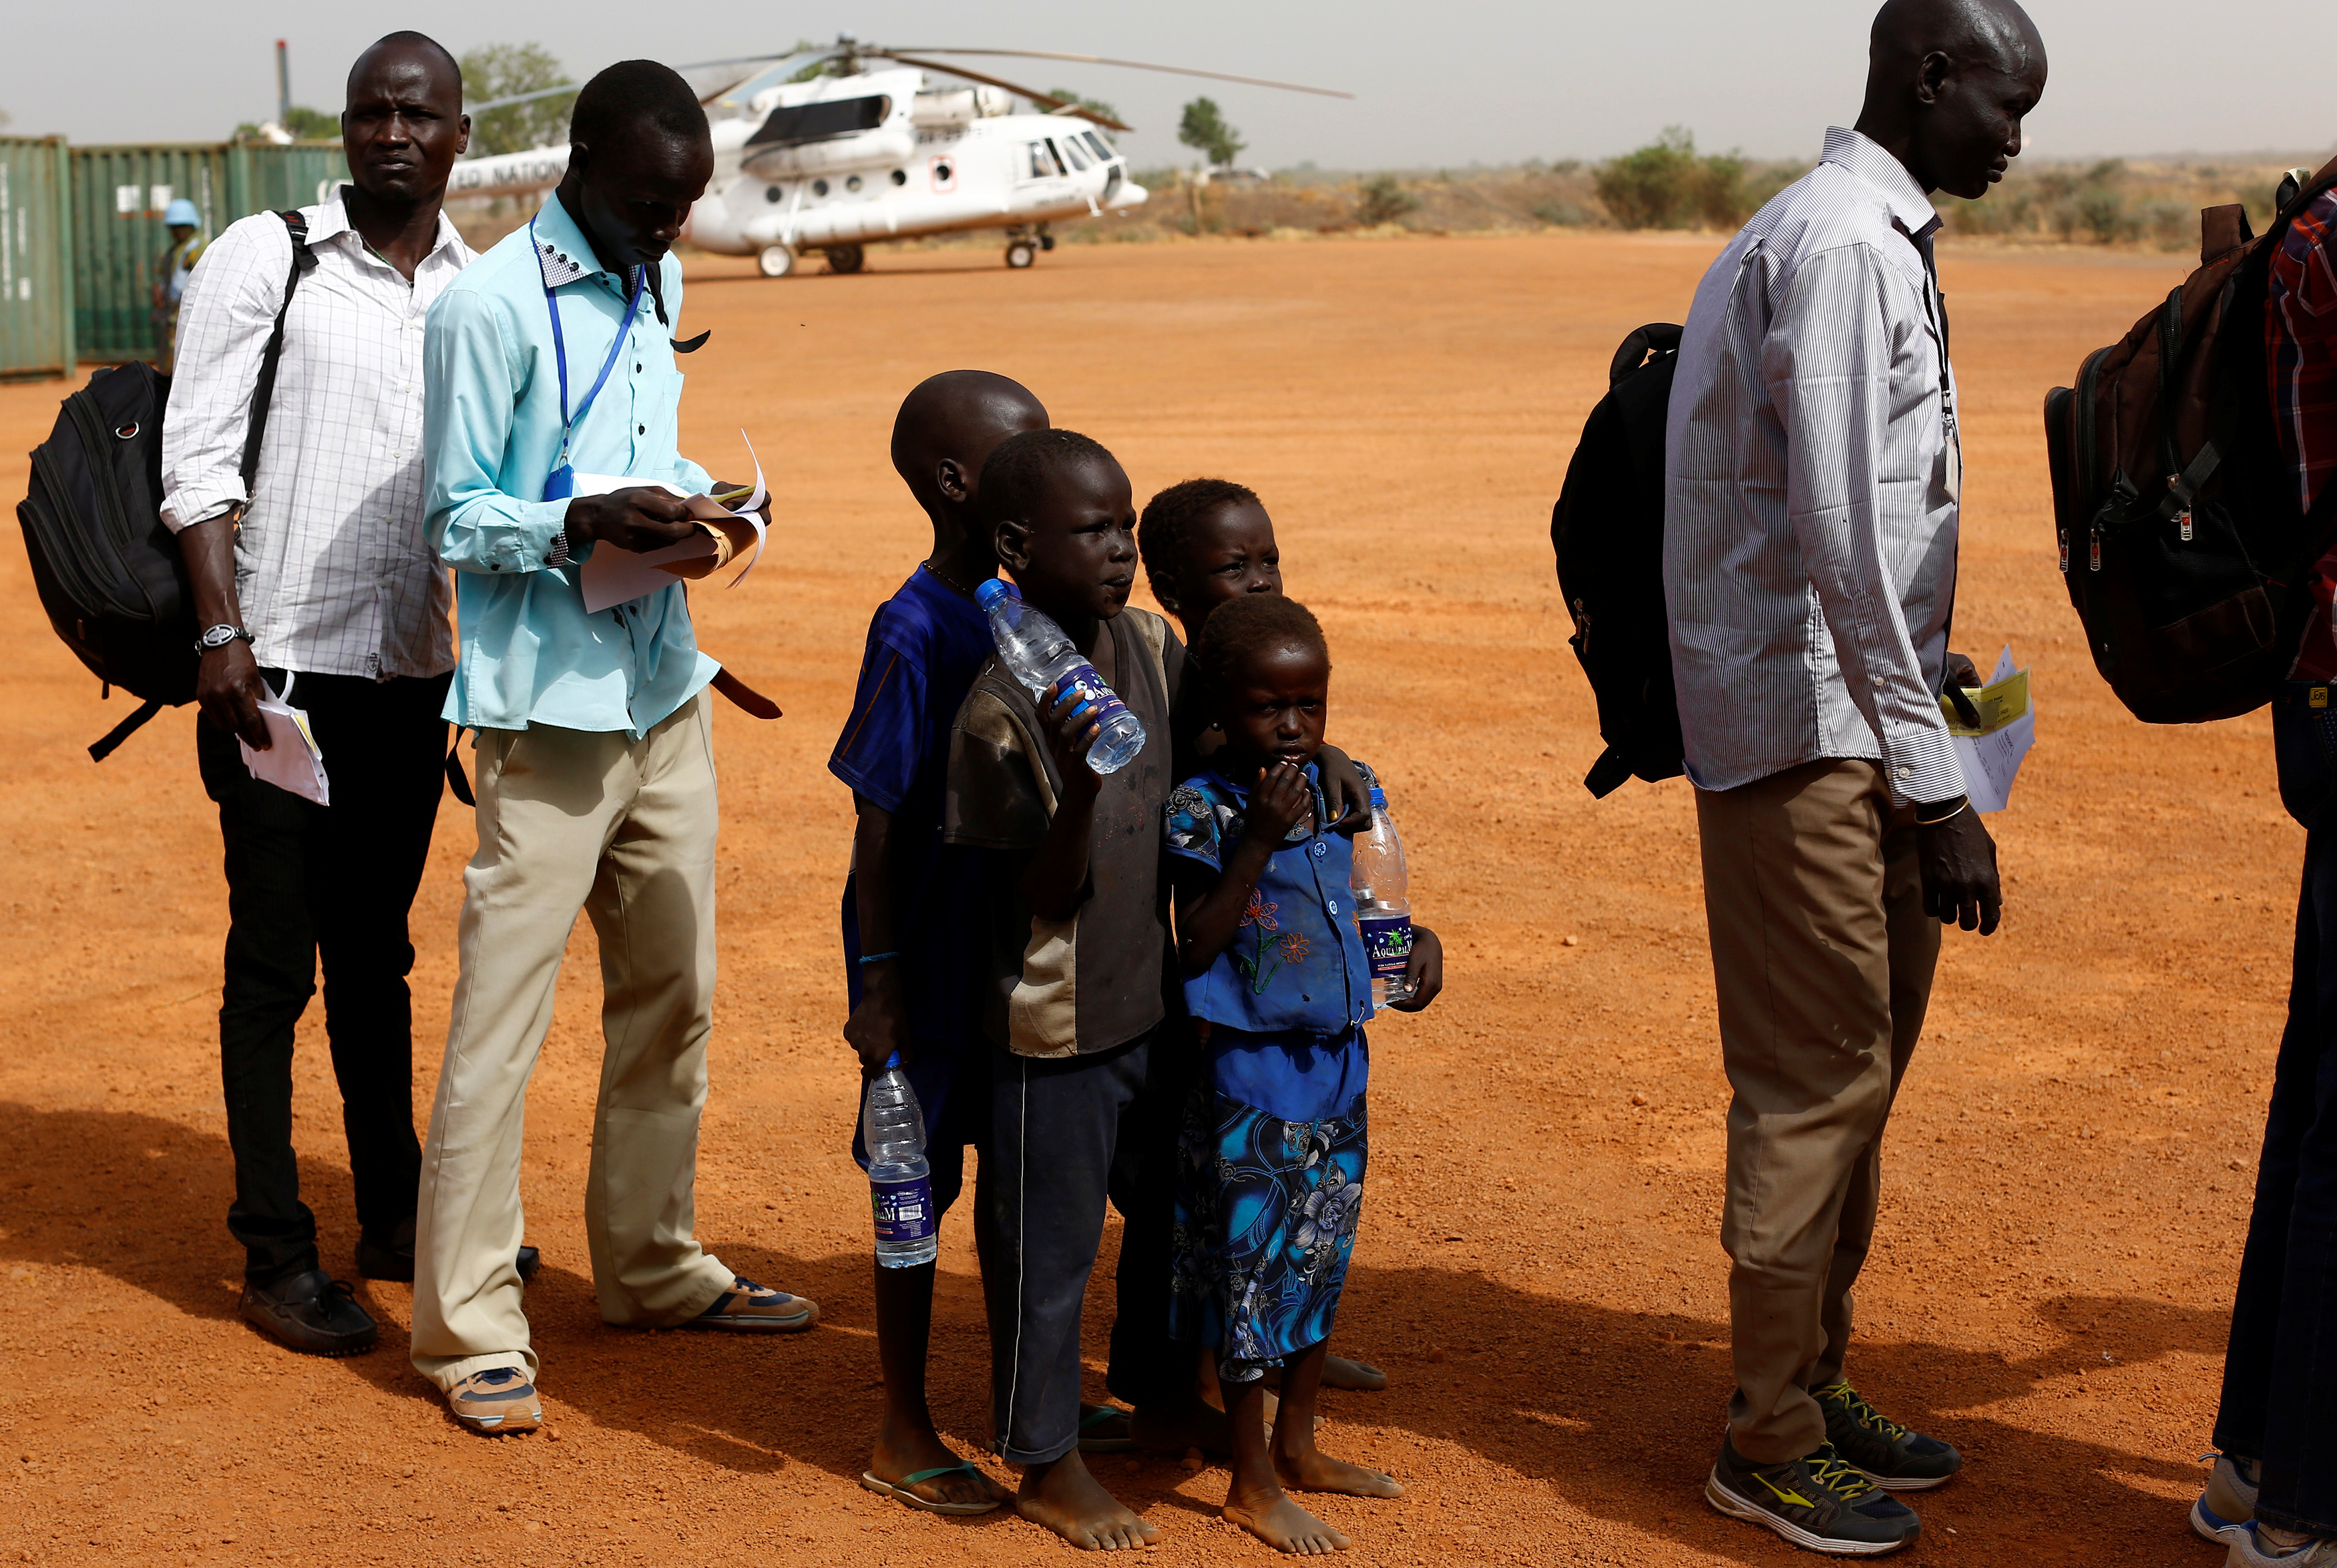 Four children wait to board a U.N. flight to Juba, where they will be reunited with their mother. Photo by Siegfried Modola/Reuters